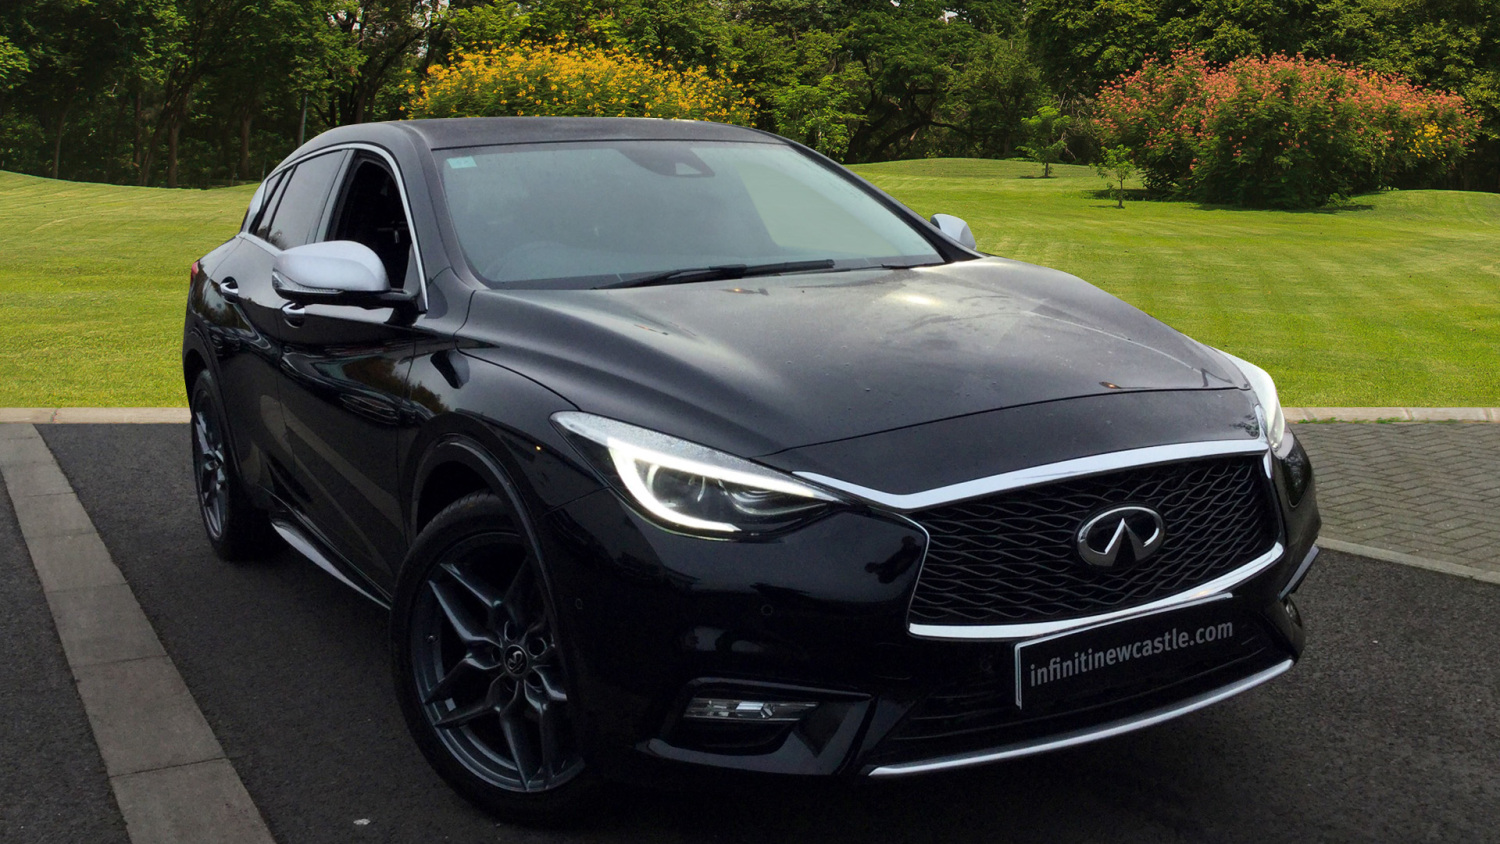 used infiniti q30 1 5d premium 5dr dct diesel hatchback. Black Bedroom Furniture Sets. Home Design Ideas